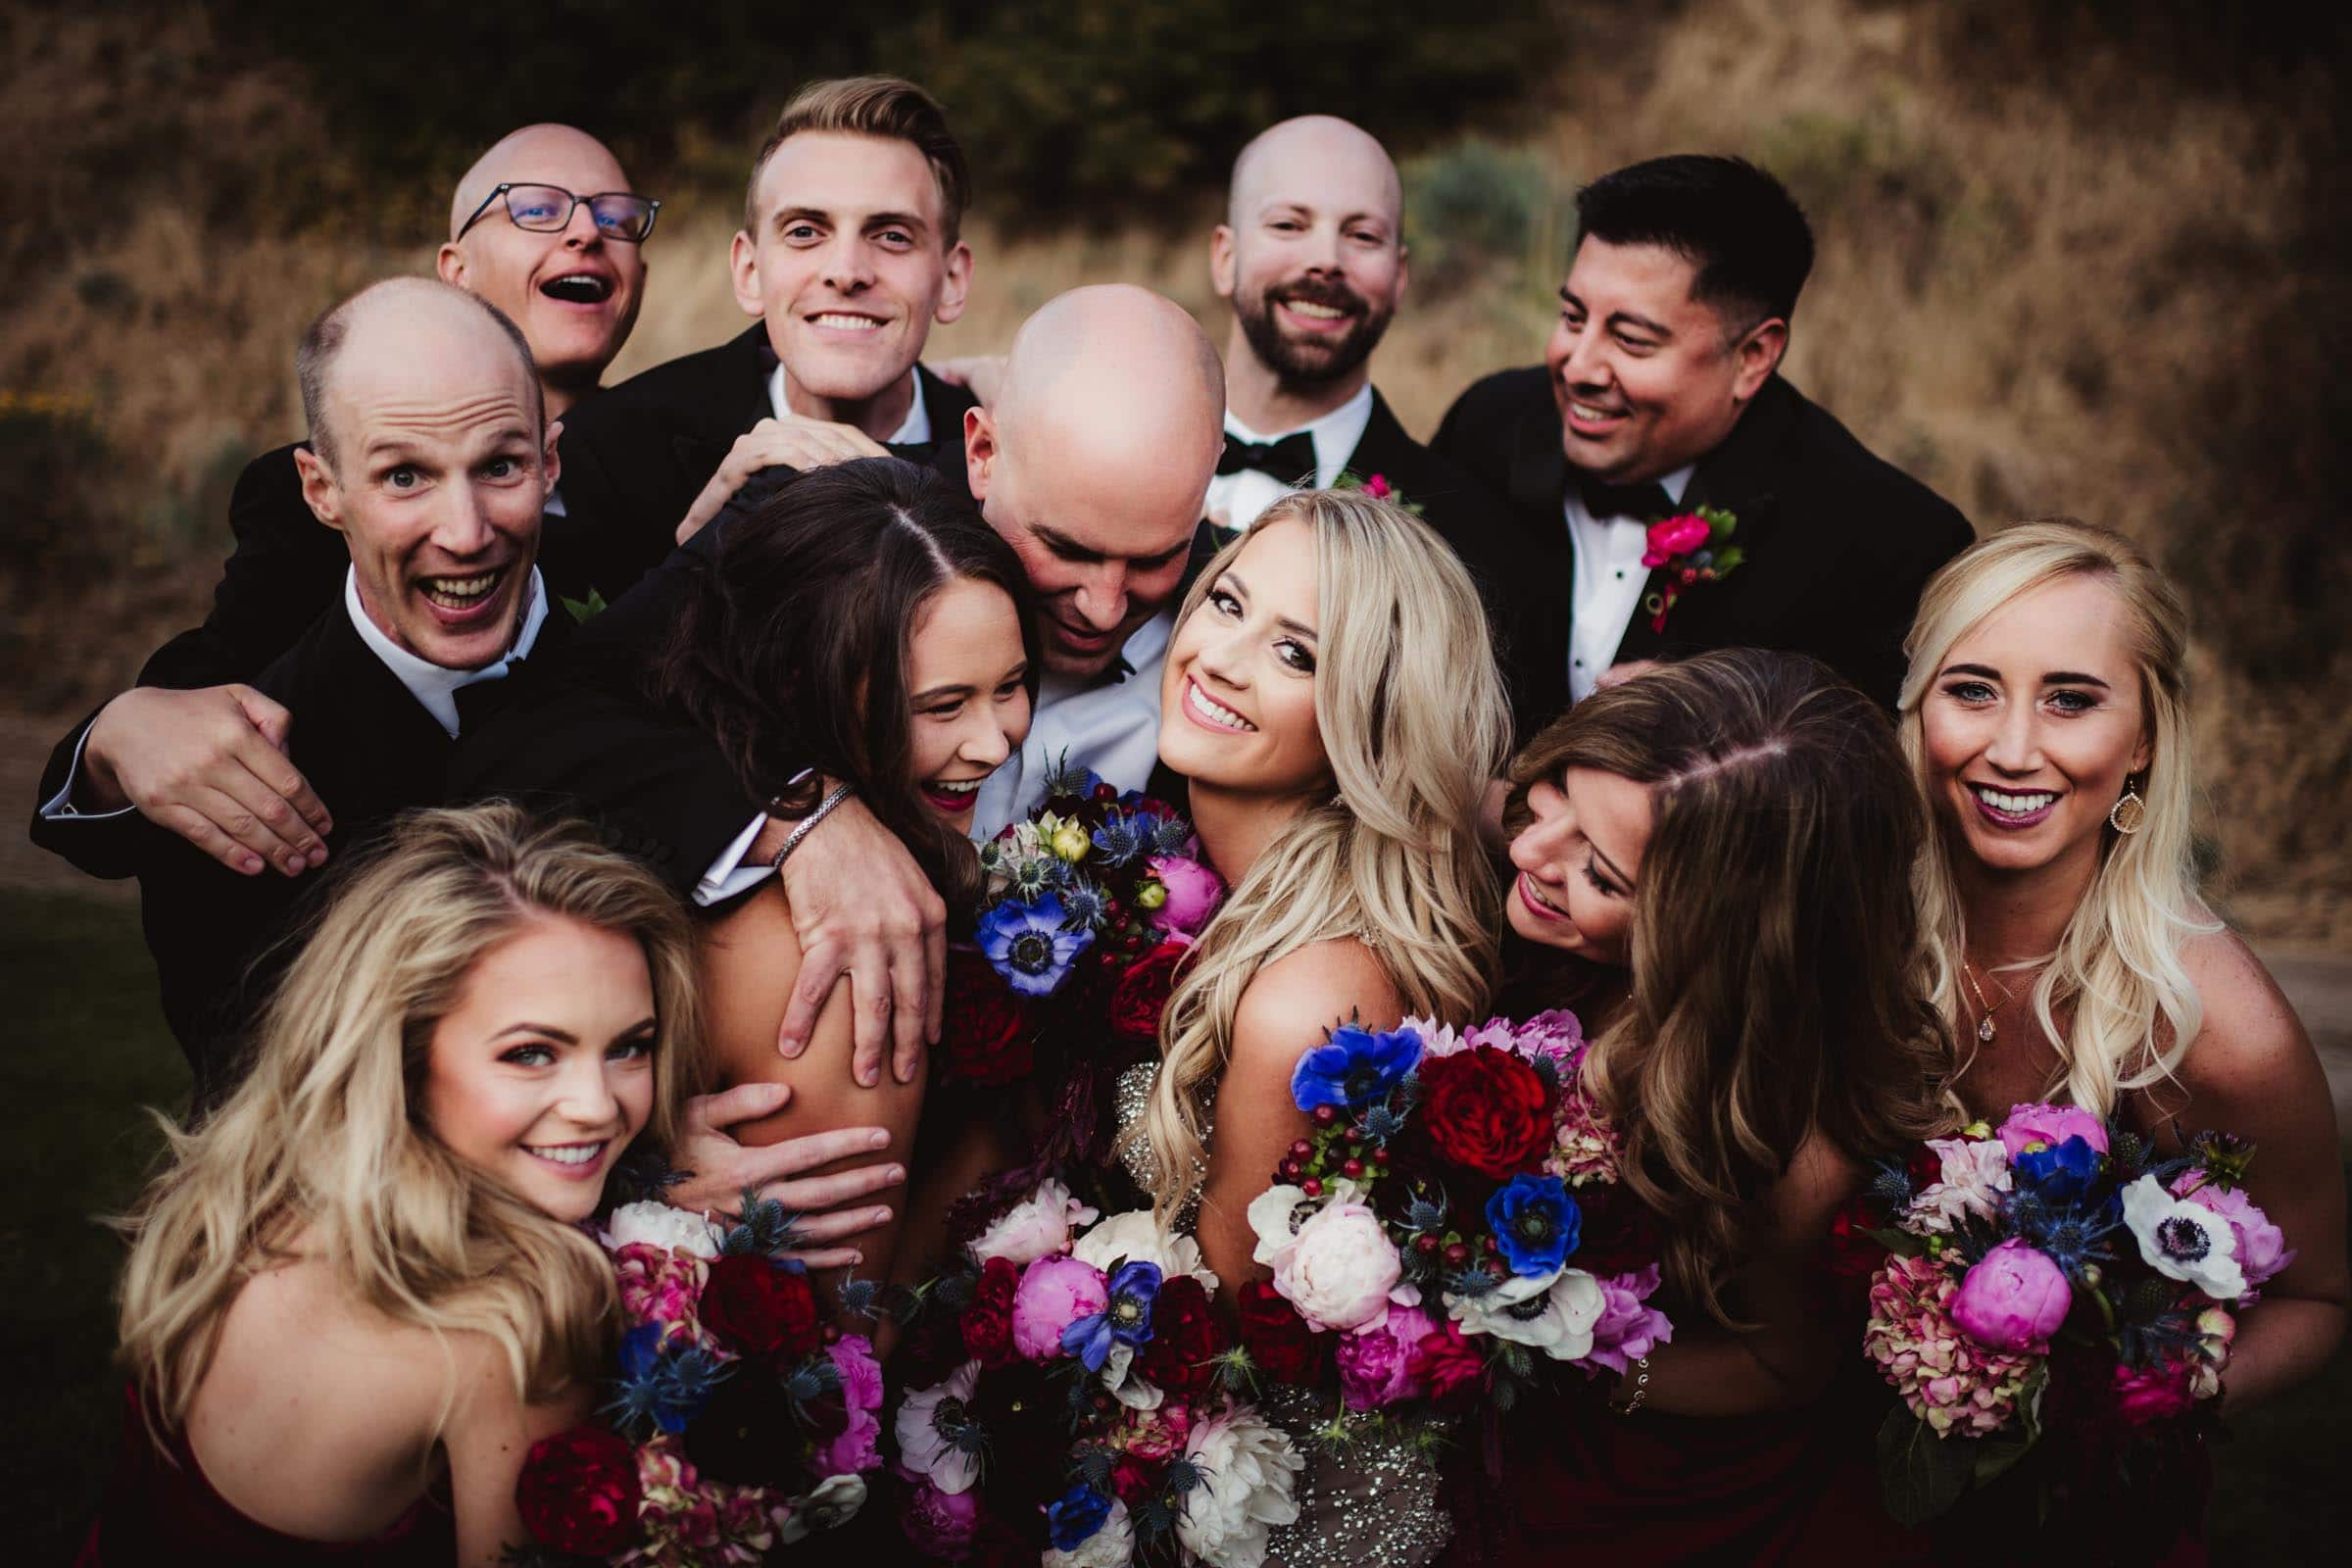 wedding couple surrounded by friends and flowers